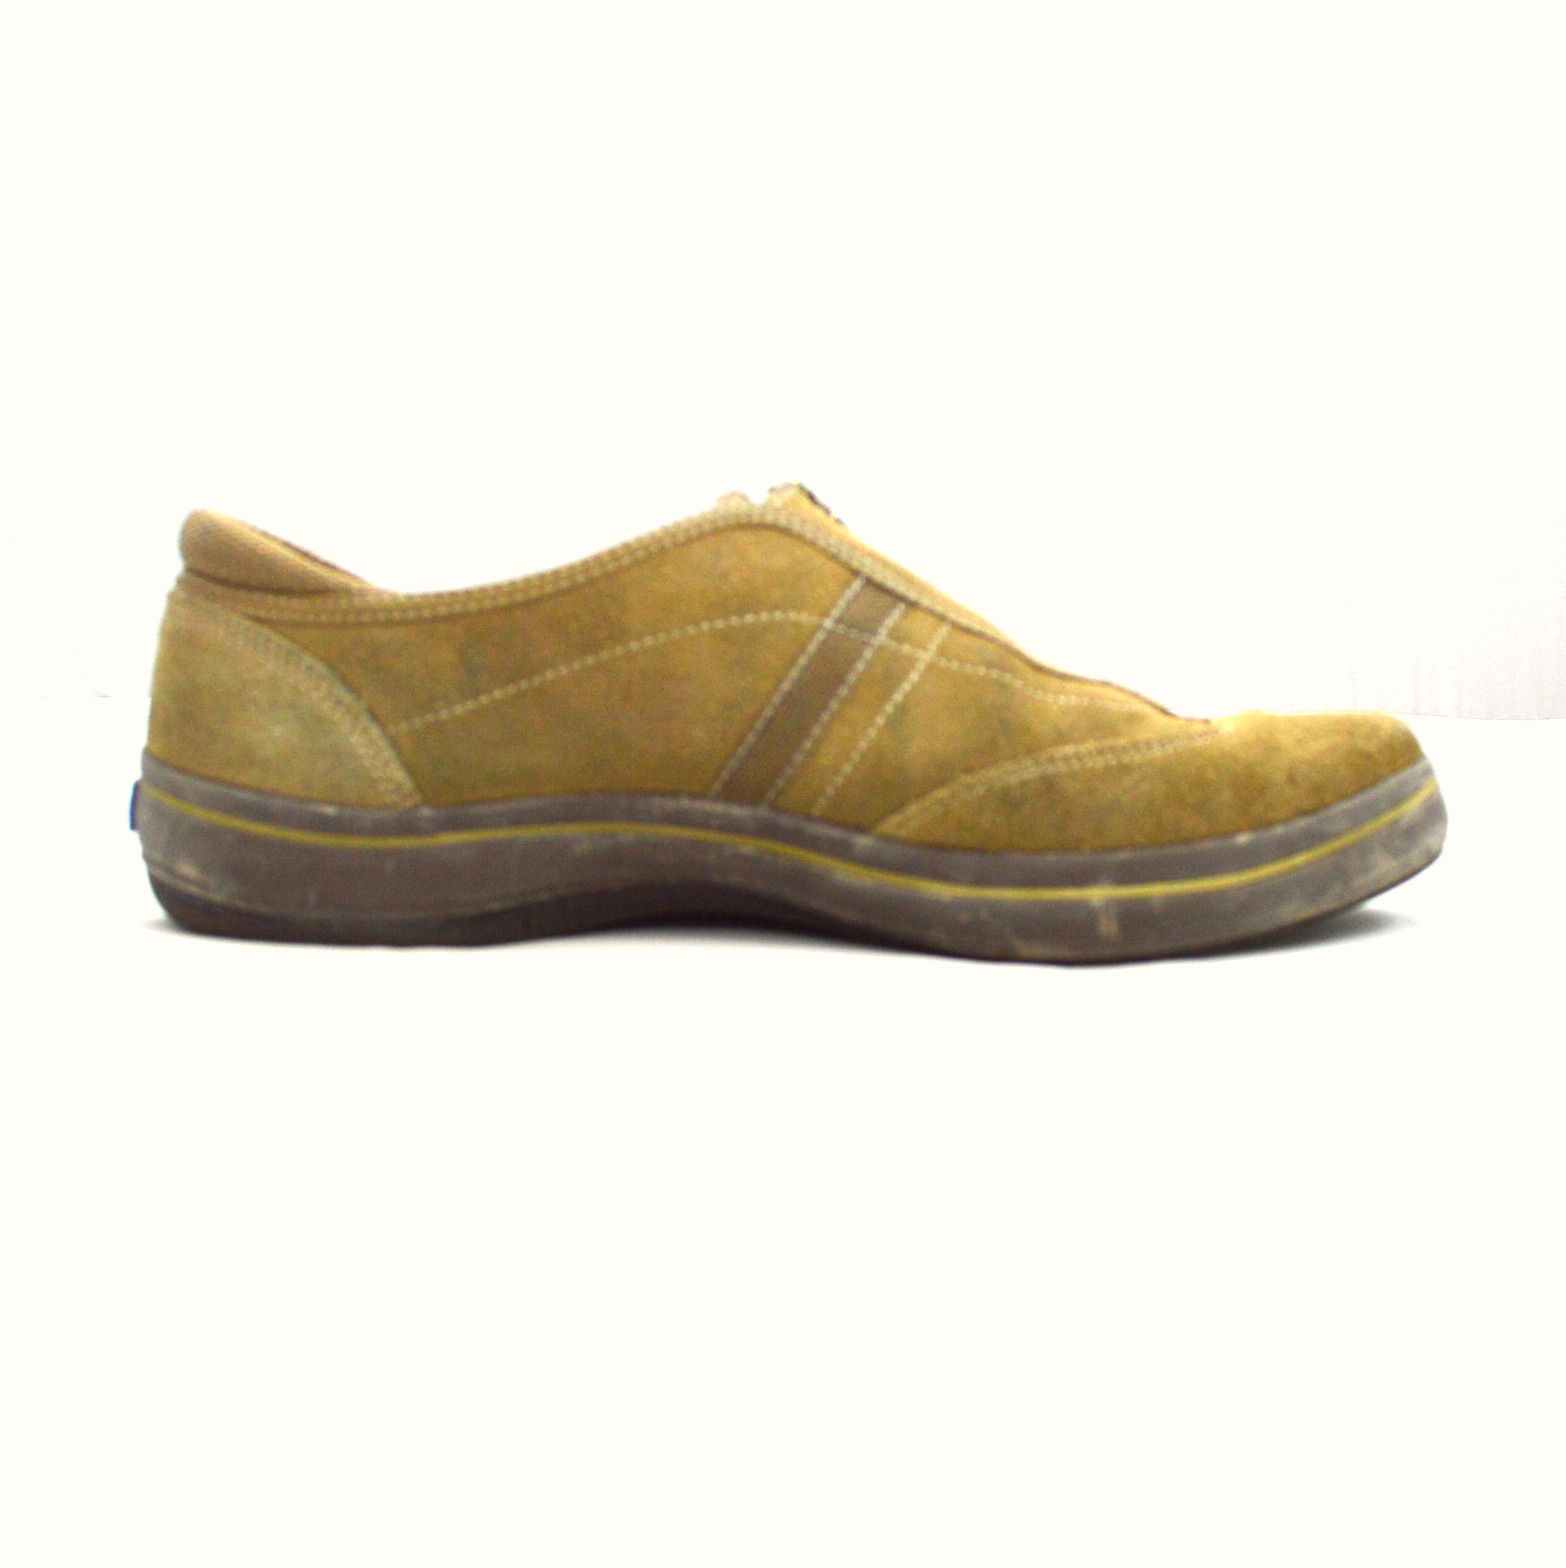 soft brown suede leather keds zip athletic walking